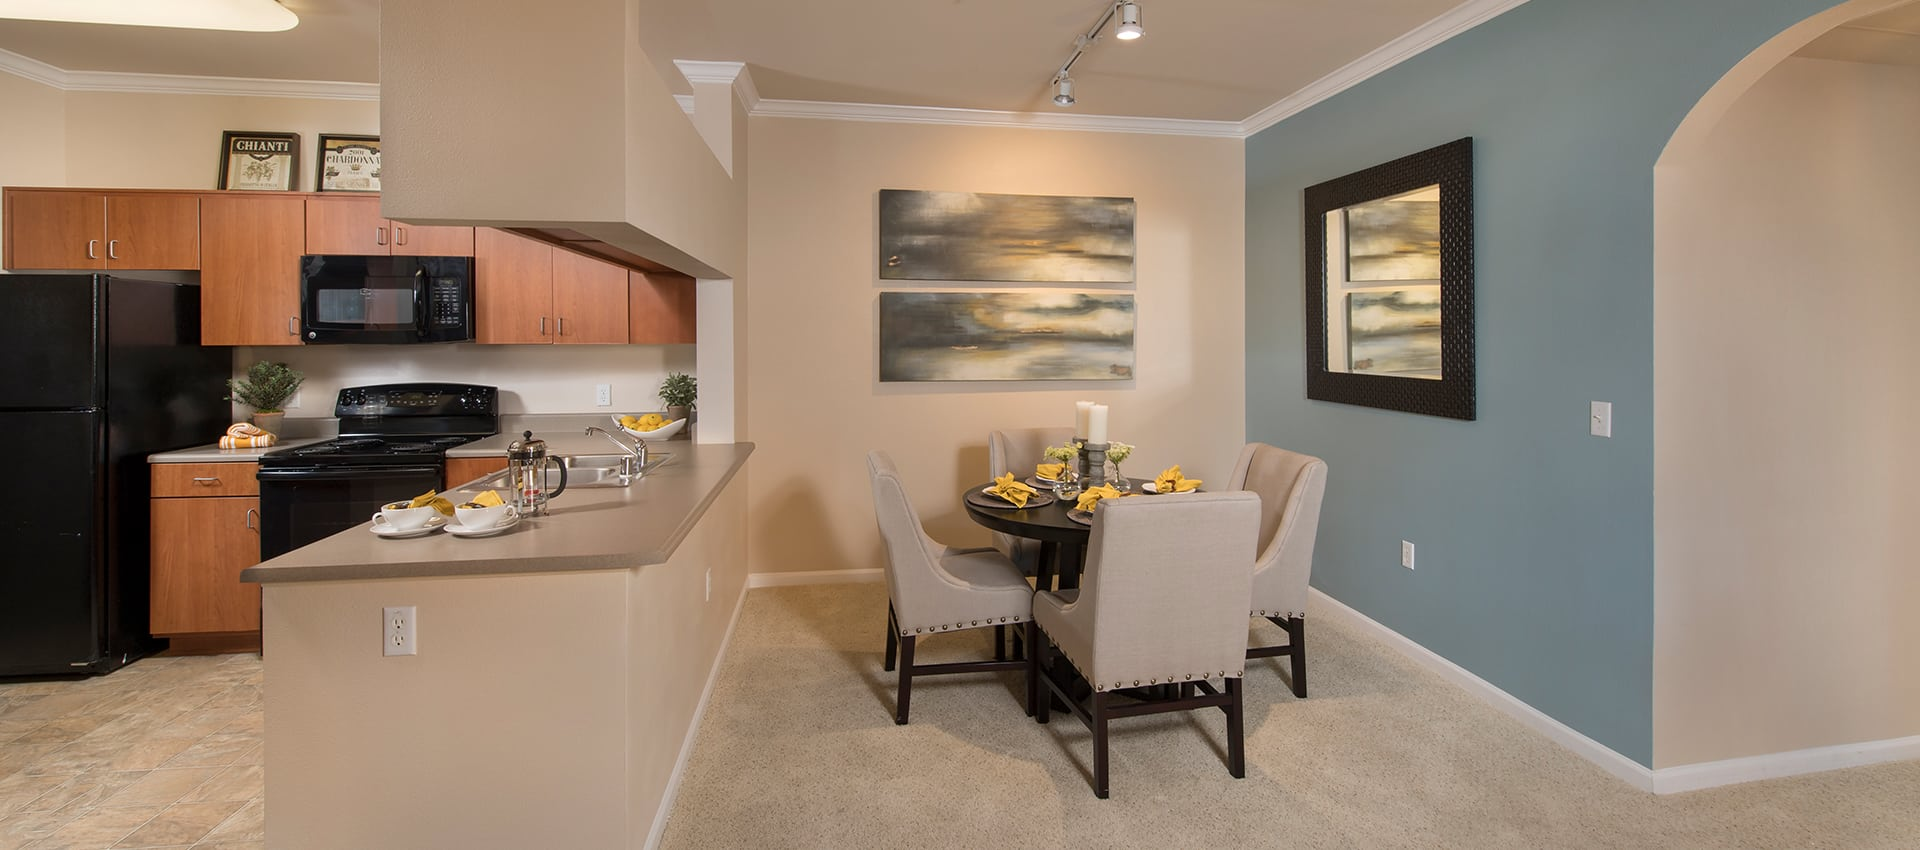 Kitchen and dining room at Esplanade Apartment Homes in Riverside, California